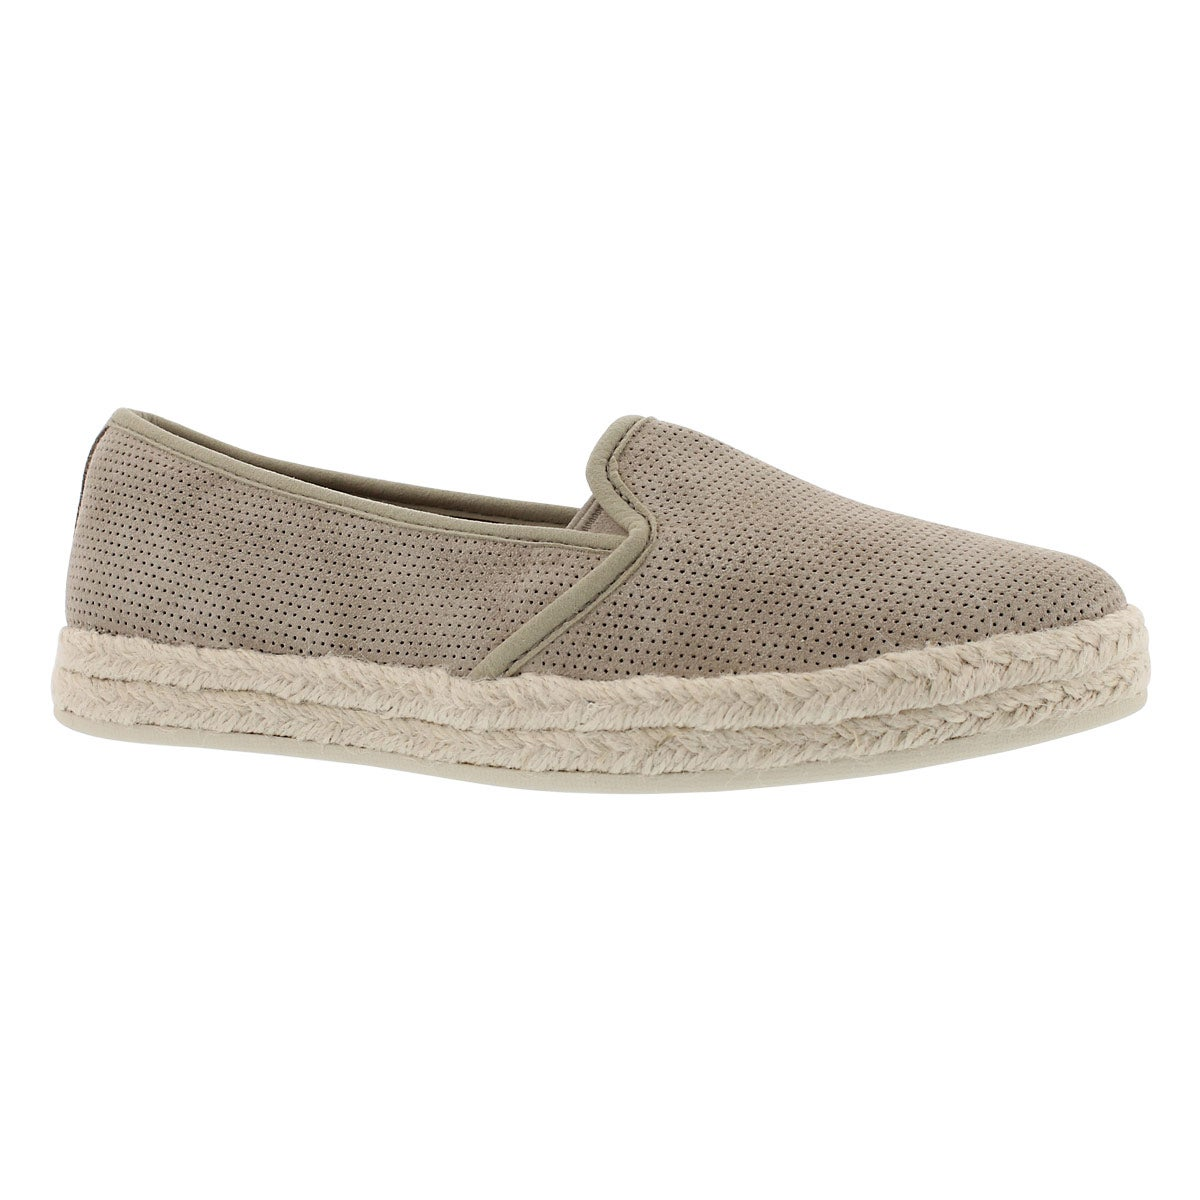 Clarks Azella Theoni Casual Slip On Shoes Size  Free Shipping